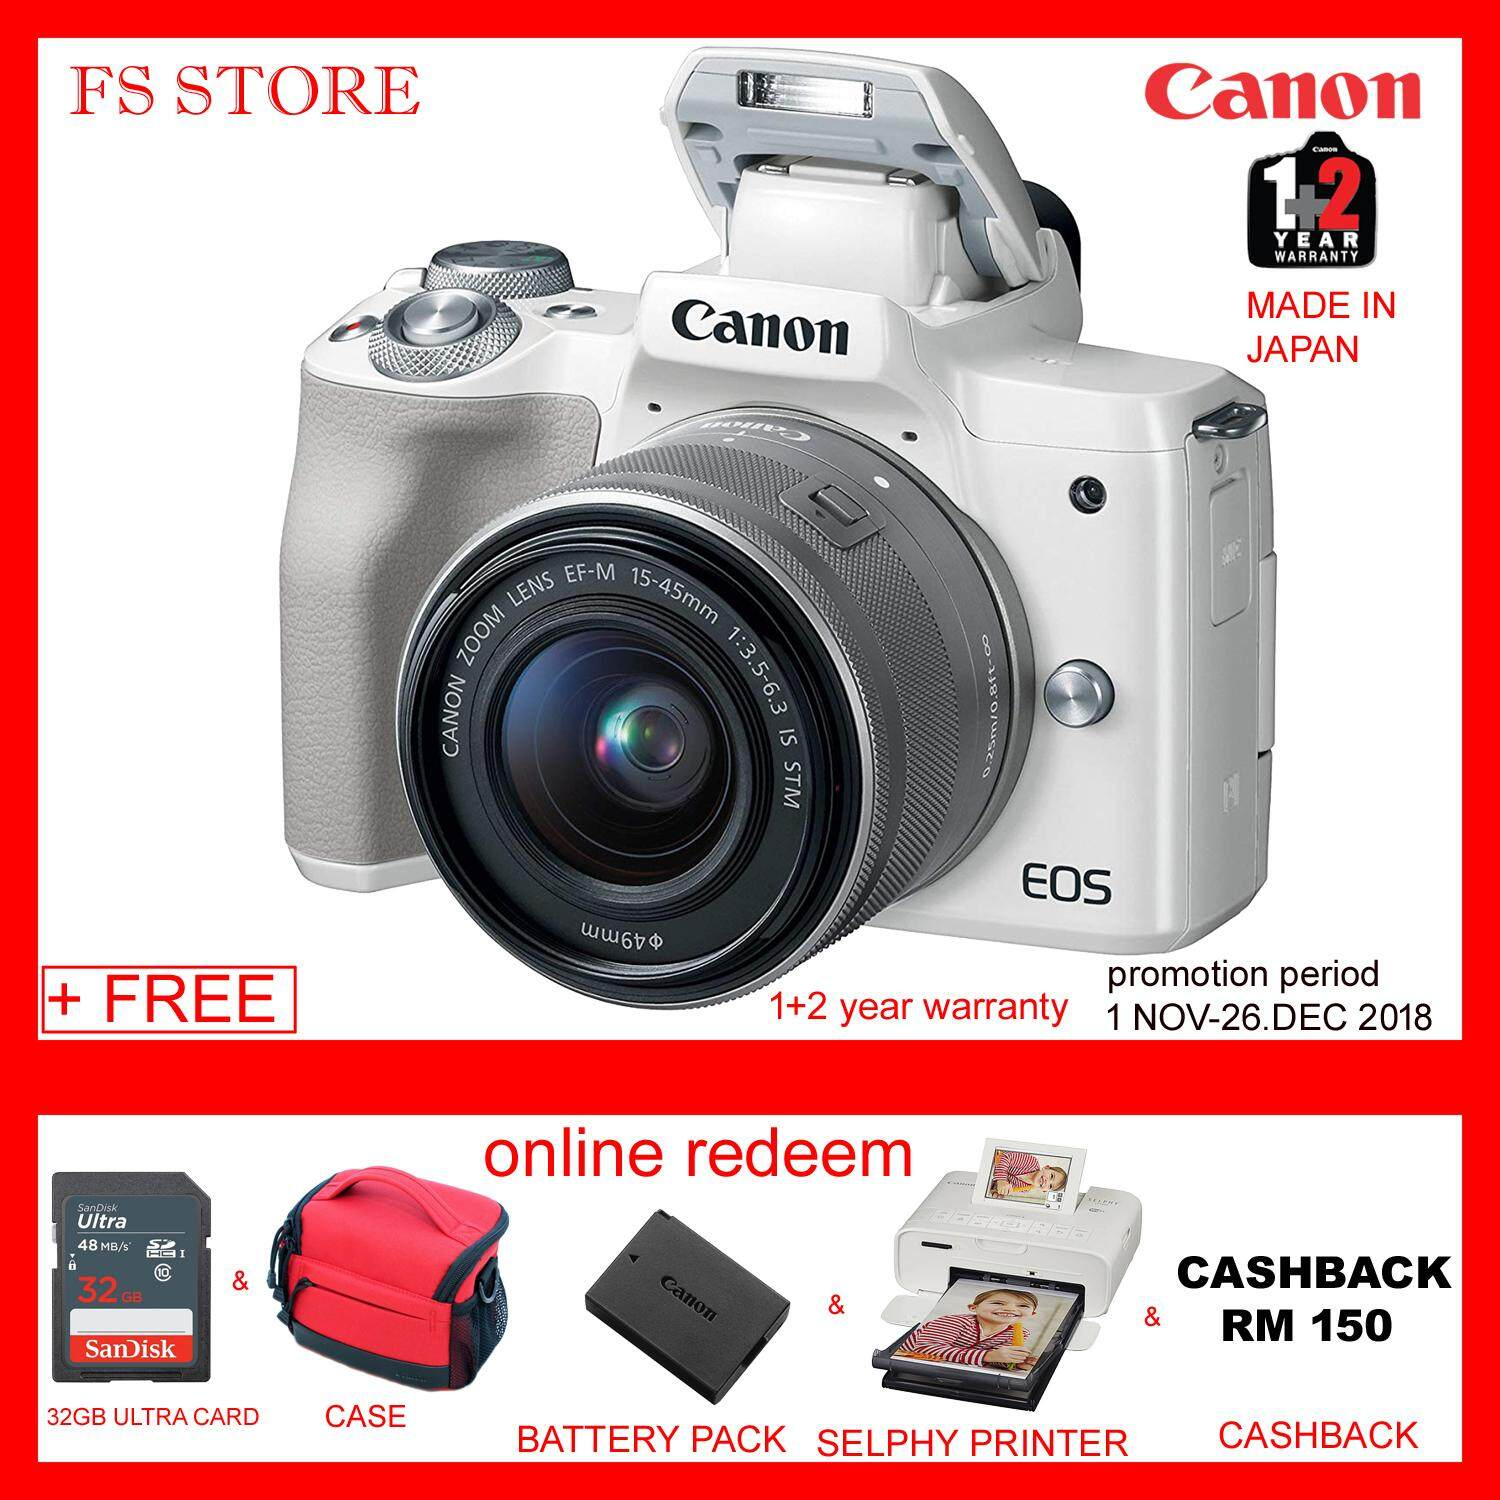 Daftar Harga Canon Eos M3 240mp Digital Camera Black Kit W 18 55mm M10 15 45mm Is Stm Mp Hitam Mirrorless Cameras For The Best Prices In Malaysia